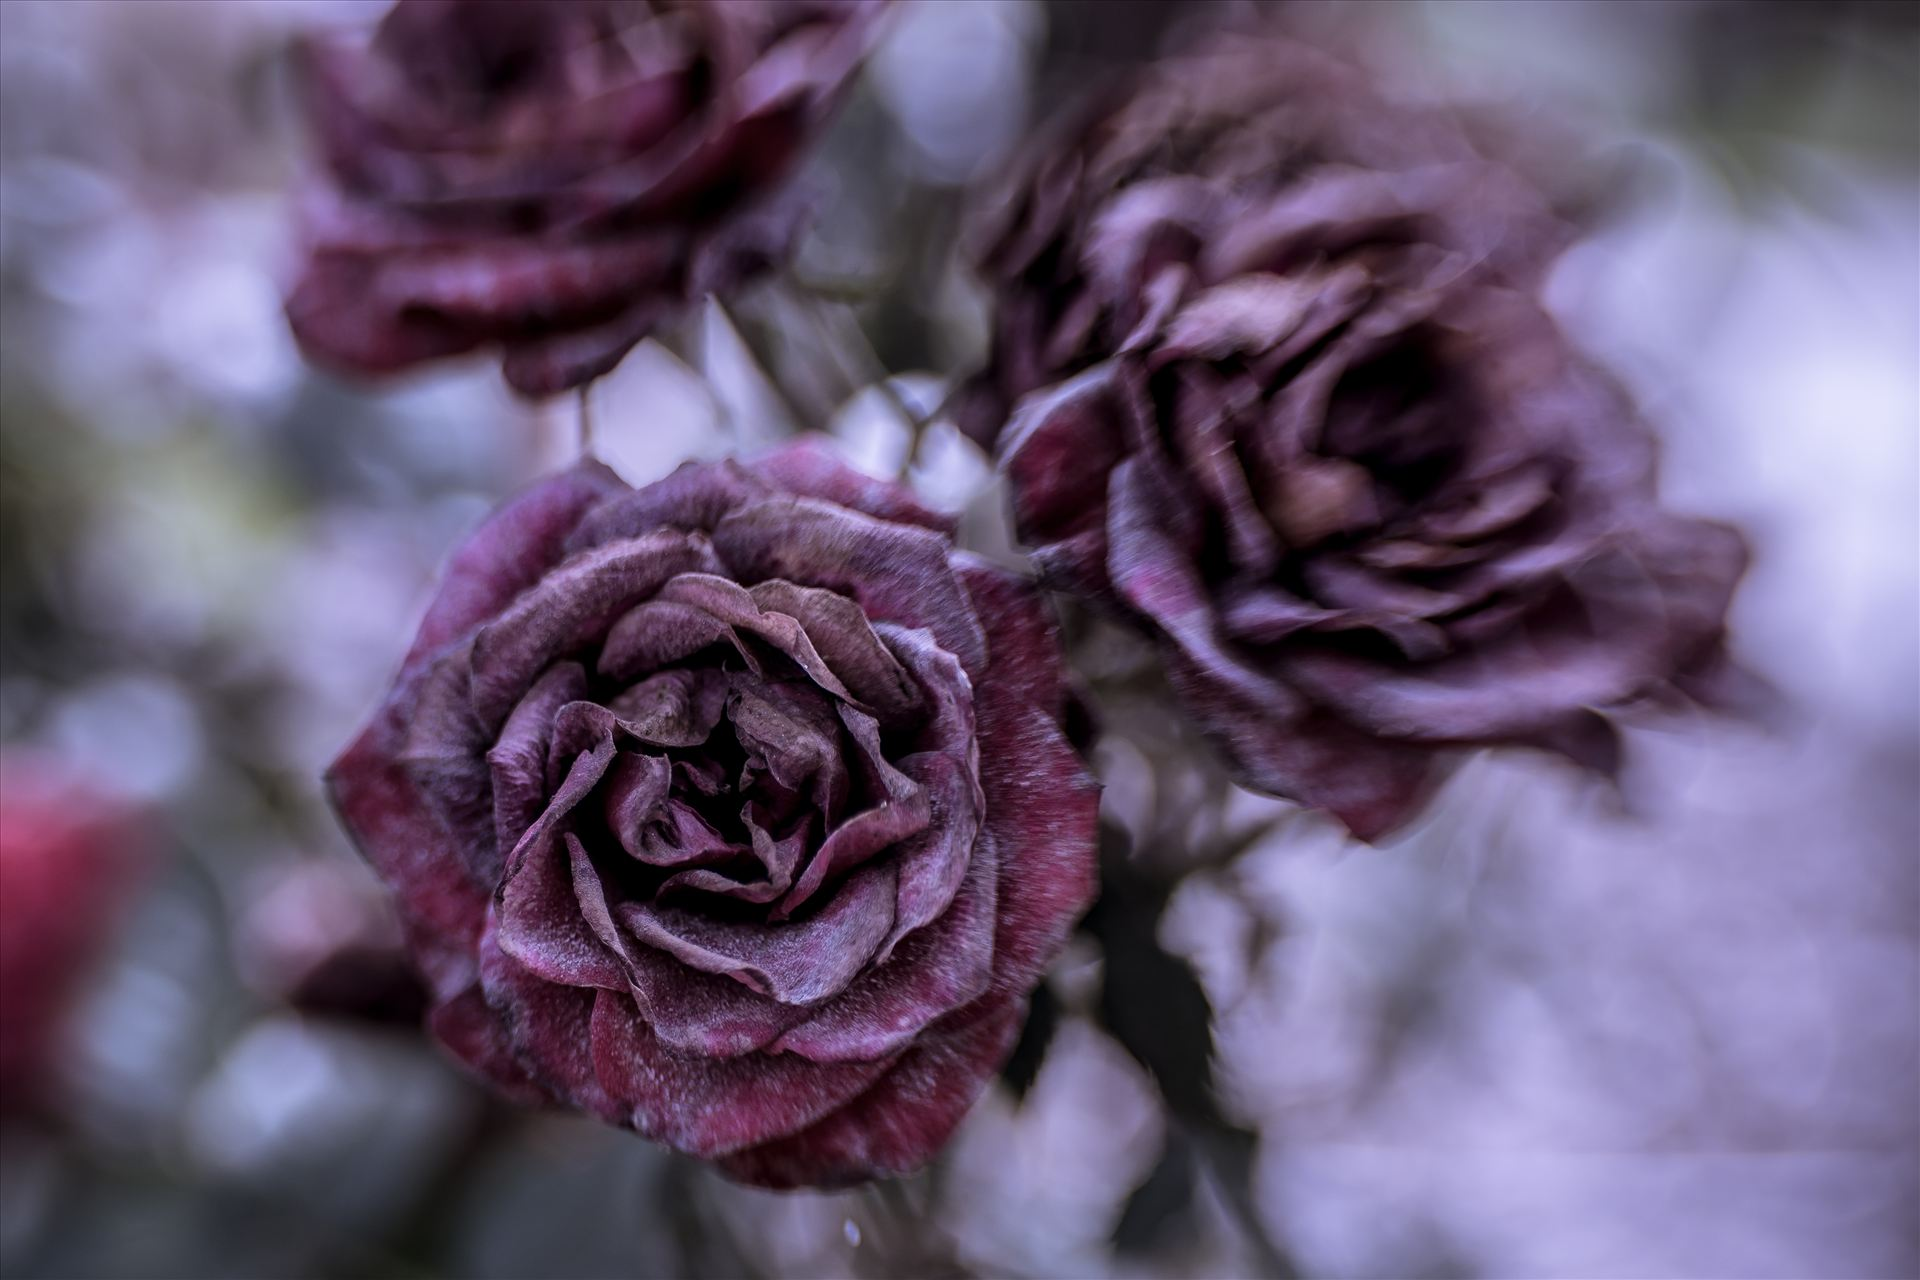 Frozen Rose.jpg - Dried roses frozen in time by Sarah Williams